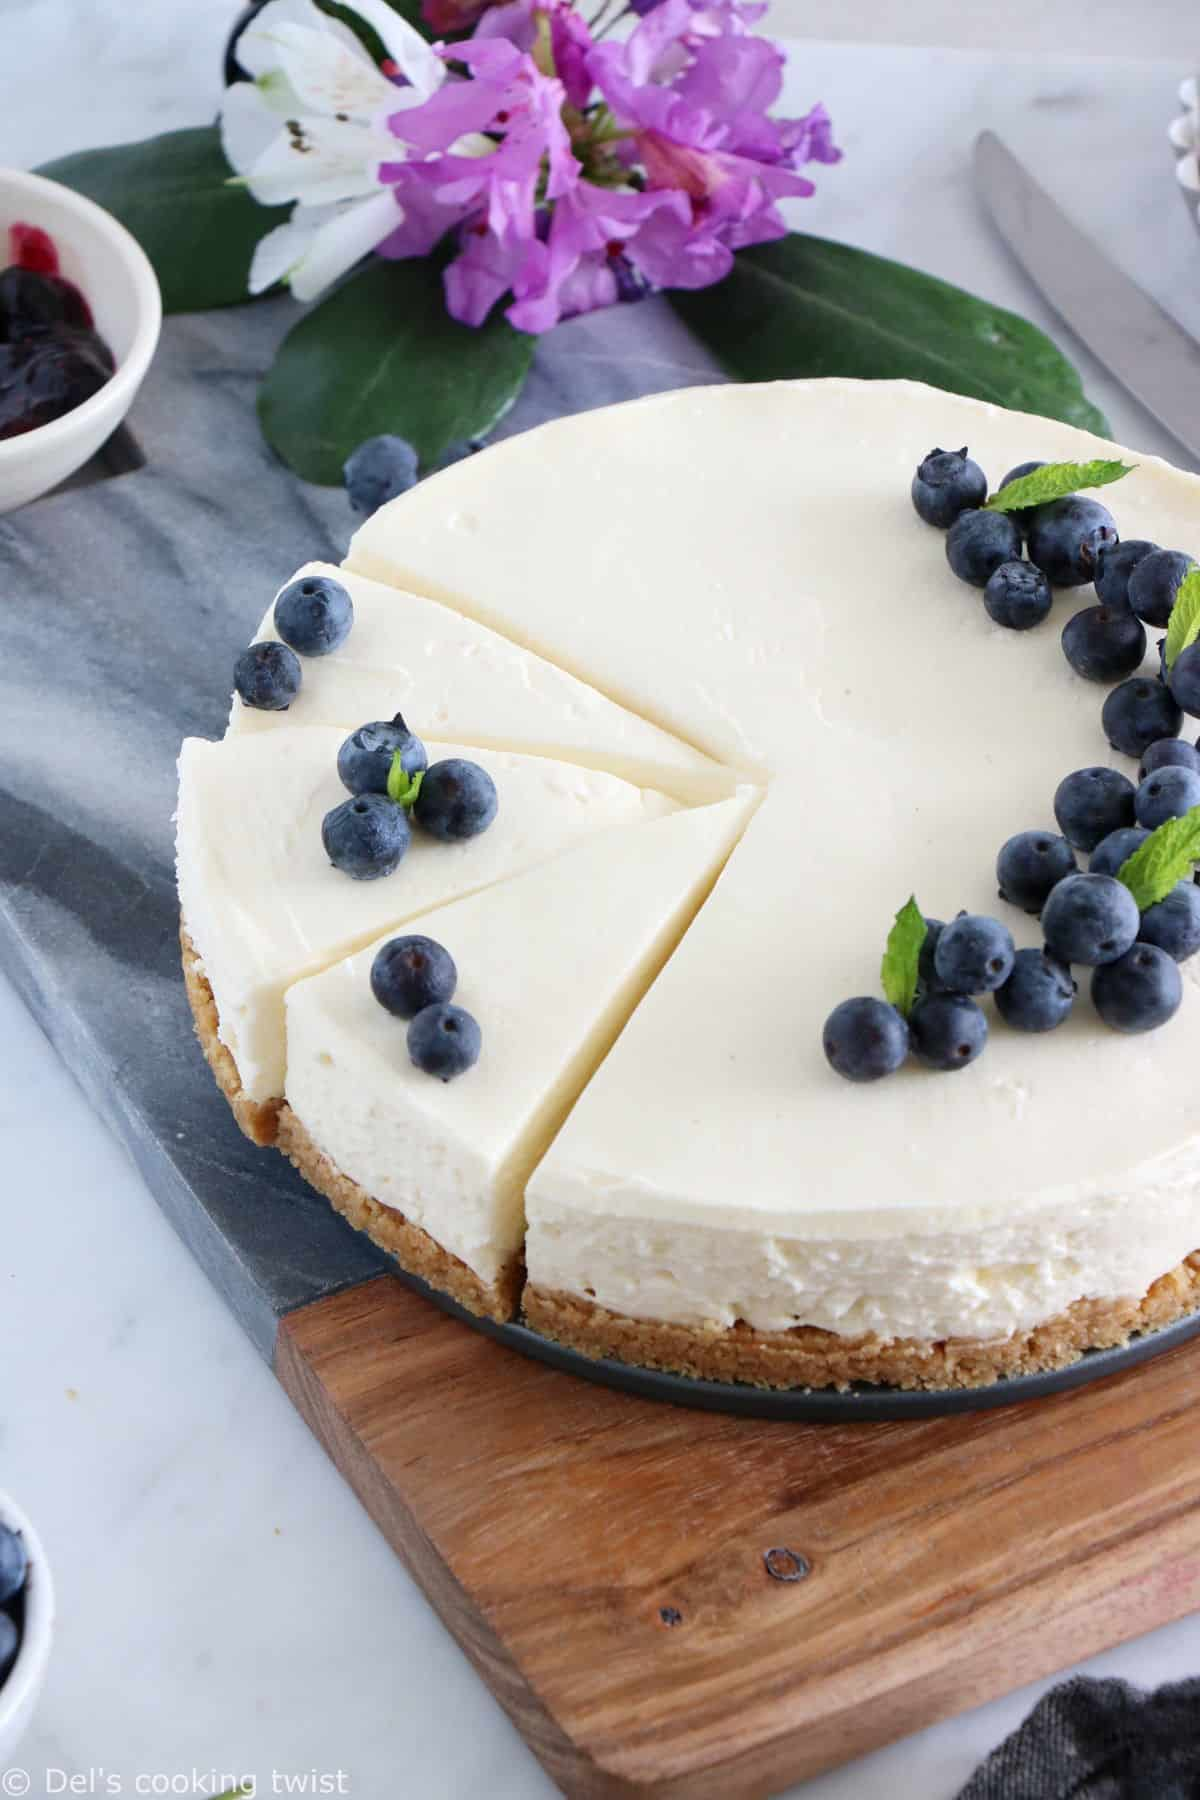 This easy no-bake cheesecake is just perfection. With a few basic ingredients and very minimal effort, you will get a smooth, creamy cheesecake.